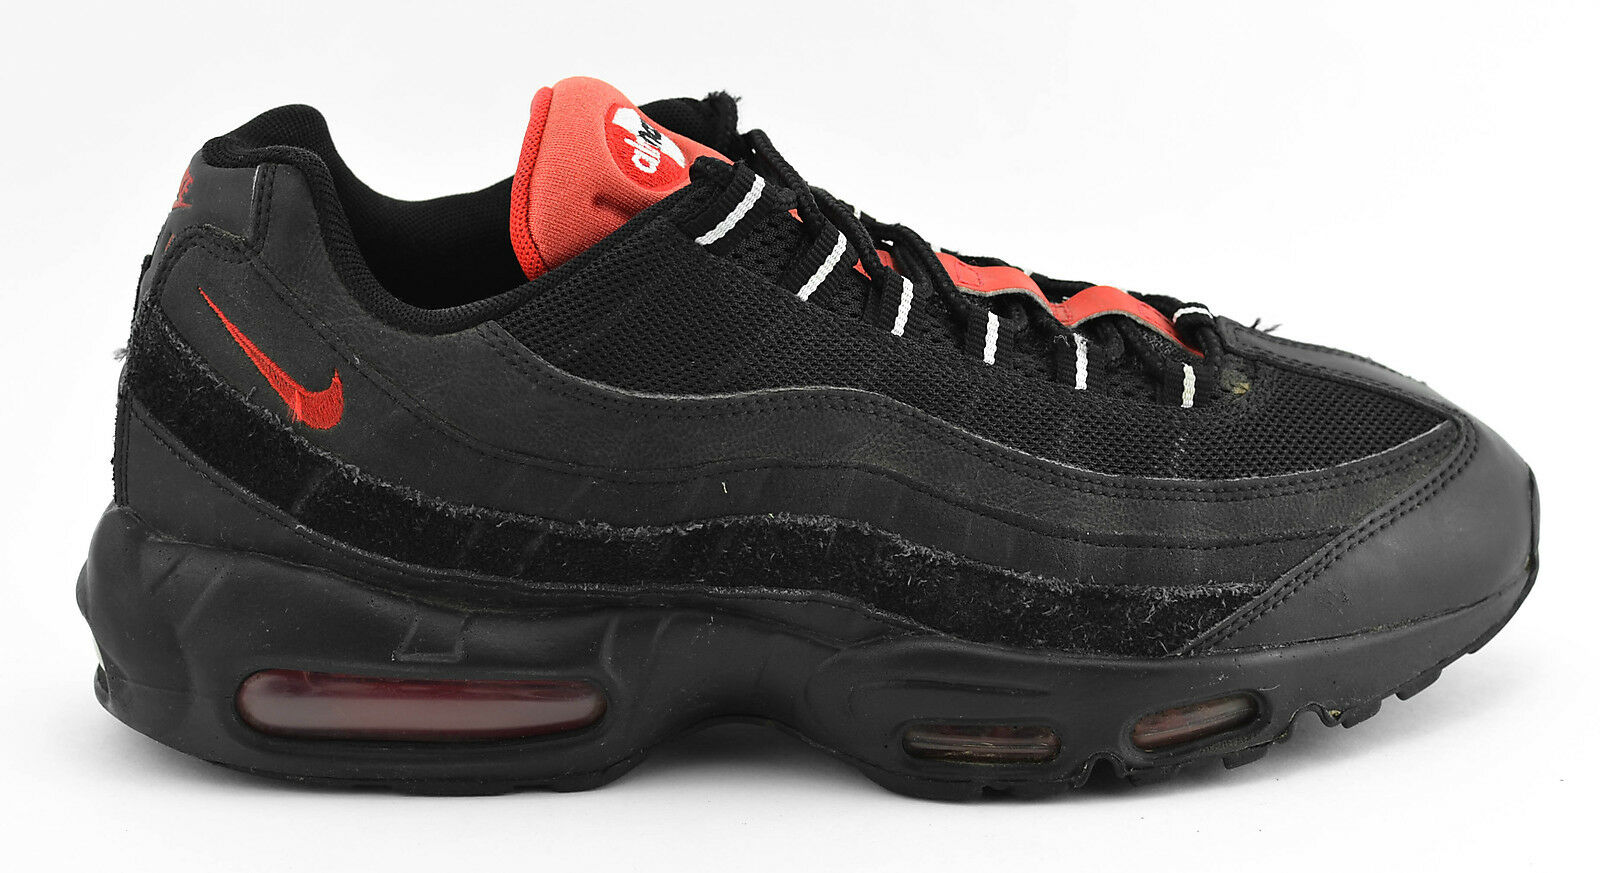 the best attitude 2aa72 5df19 MENS NIKE AIR MAX 95 RUNNING SHOES SIZE SIZE SIZE 10.5 BLACK orange RED  749766 016